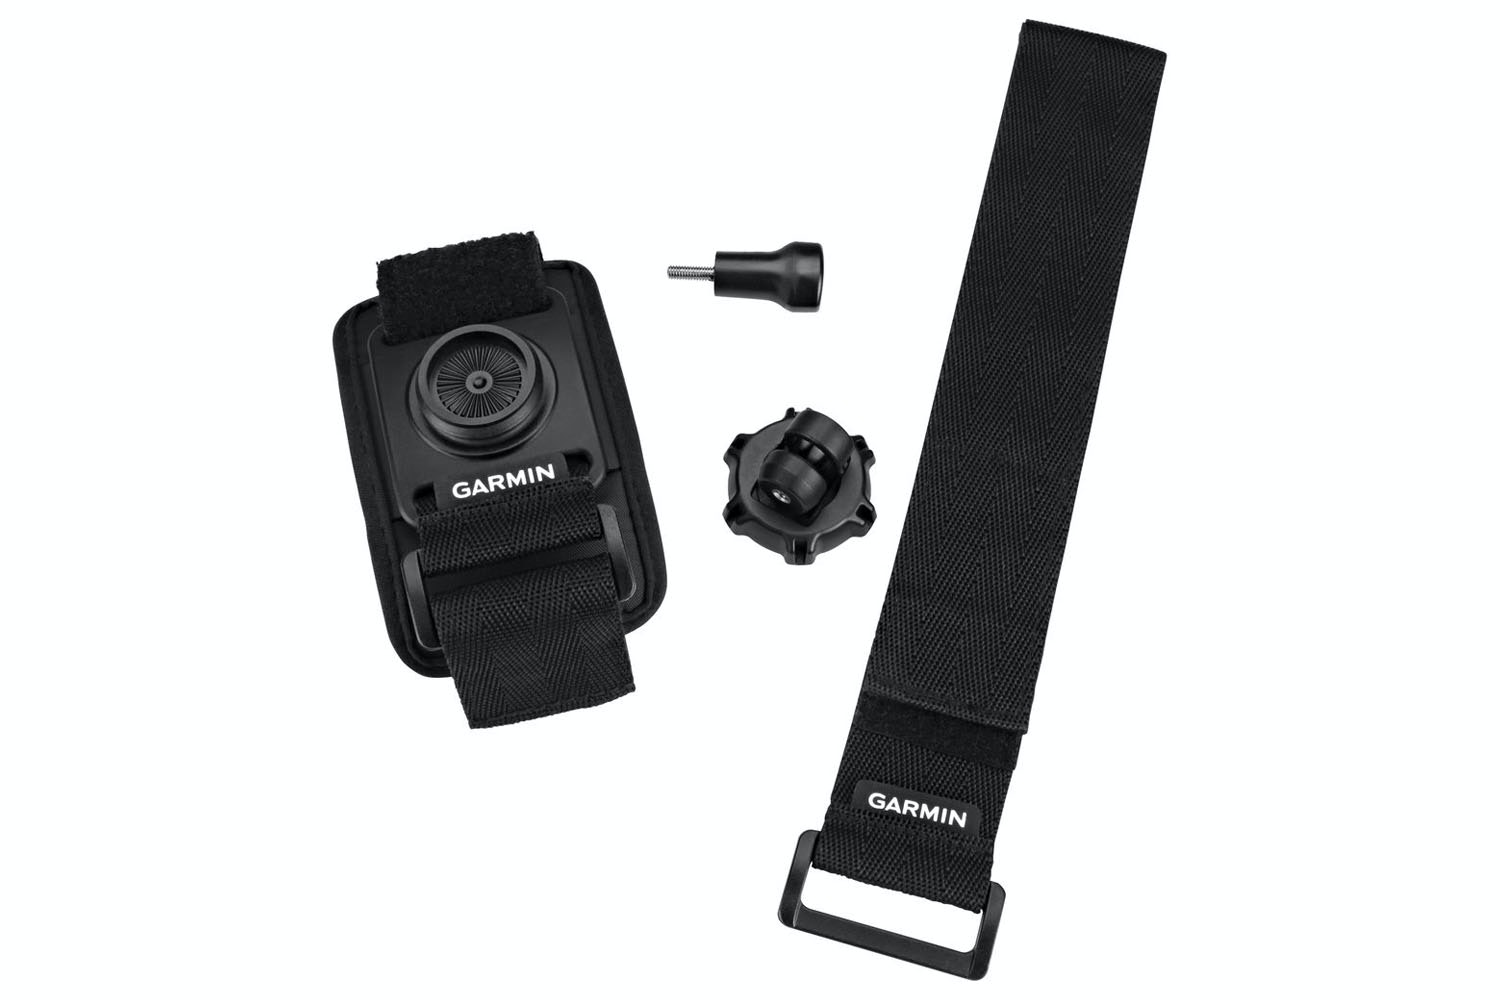 Garmin Wrist Strap Mount For Virb Camera